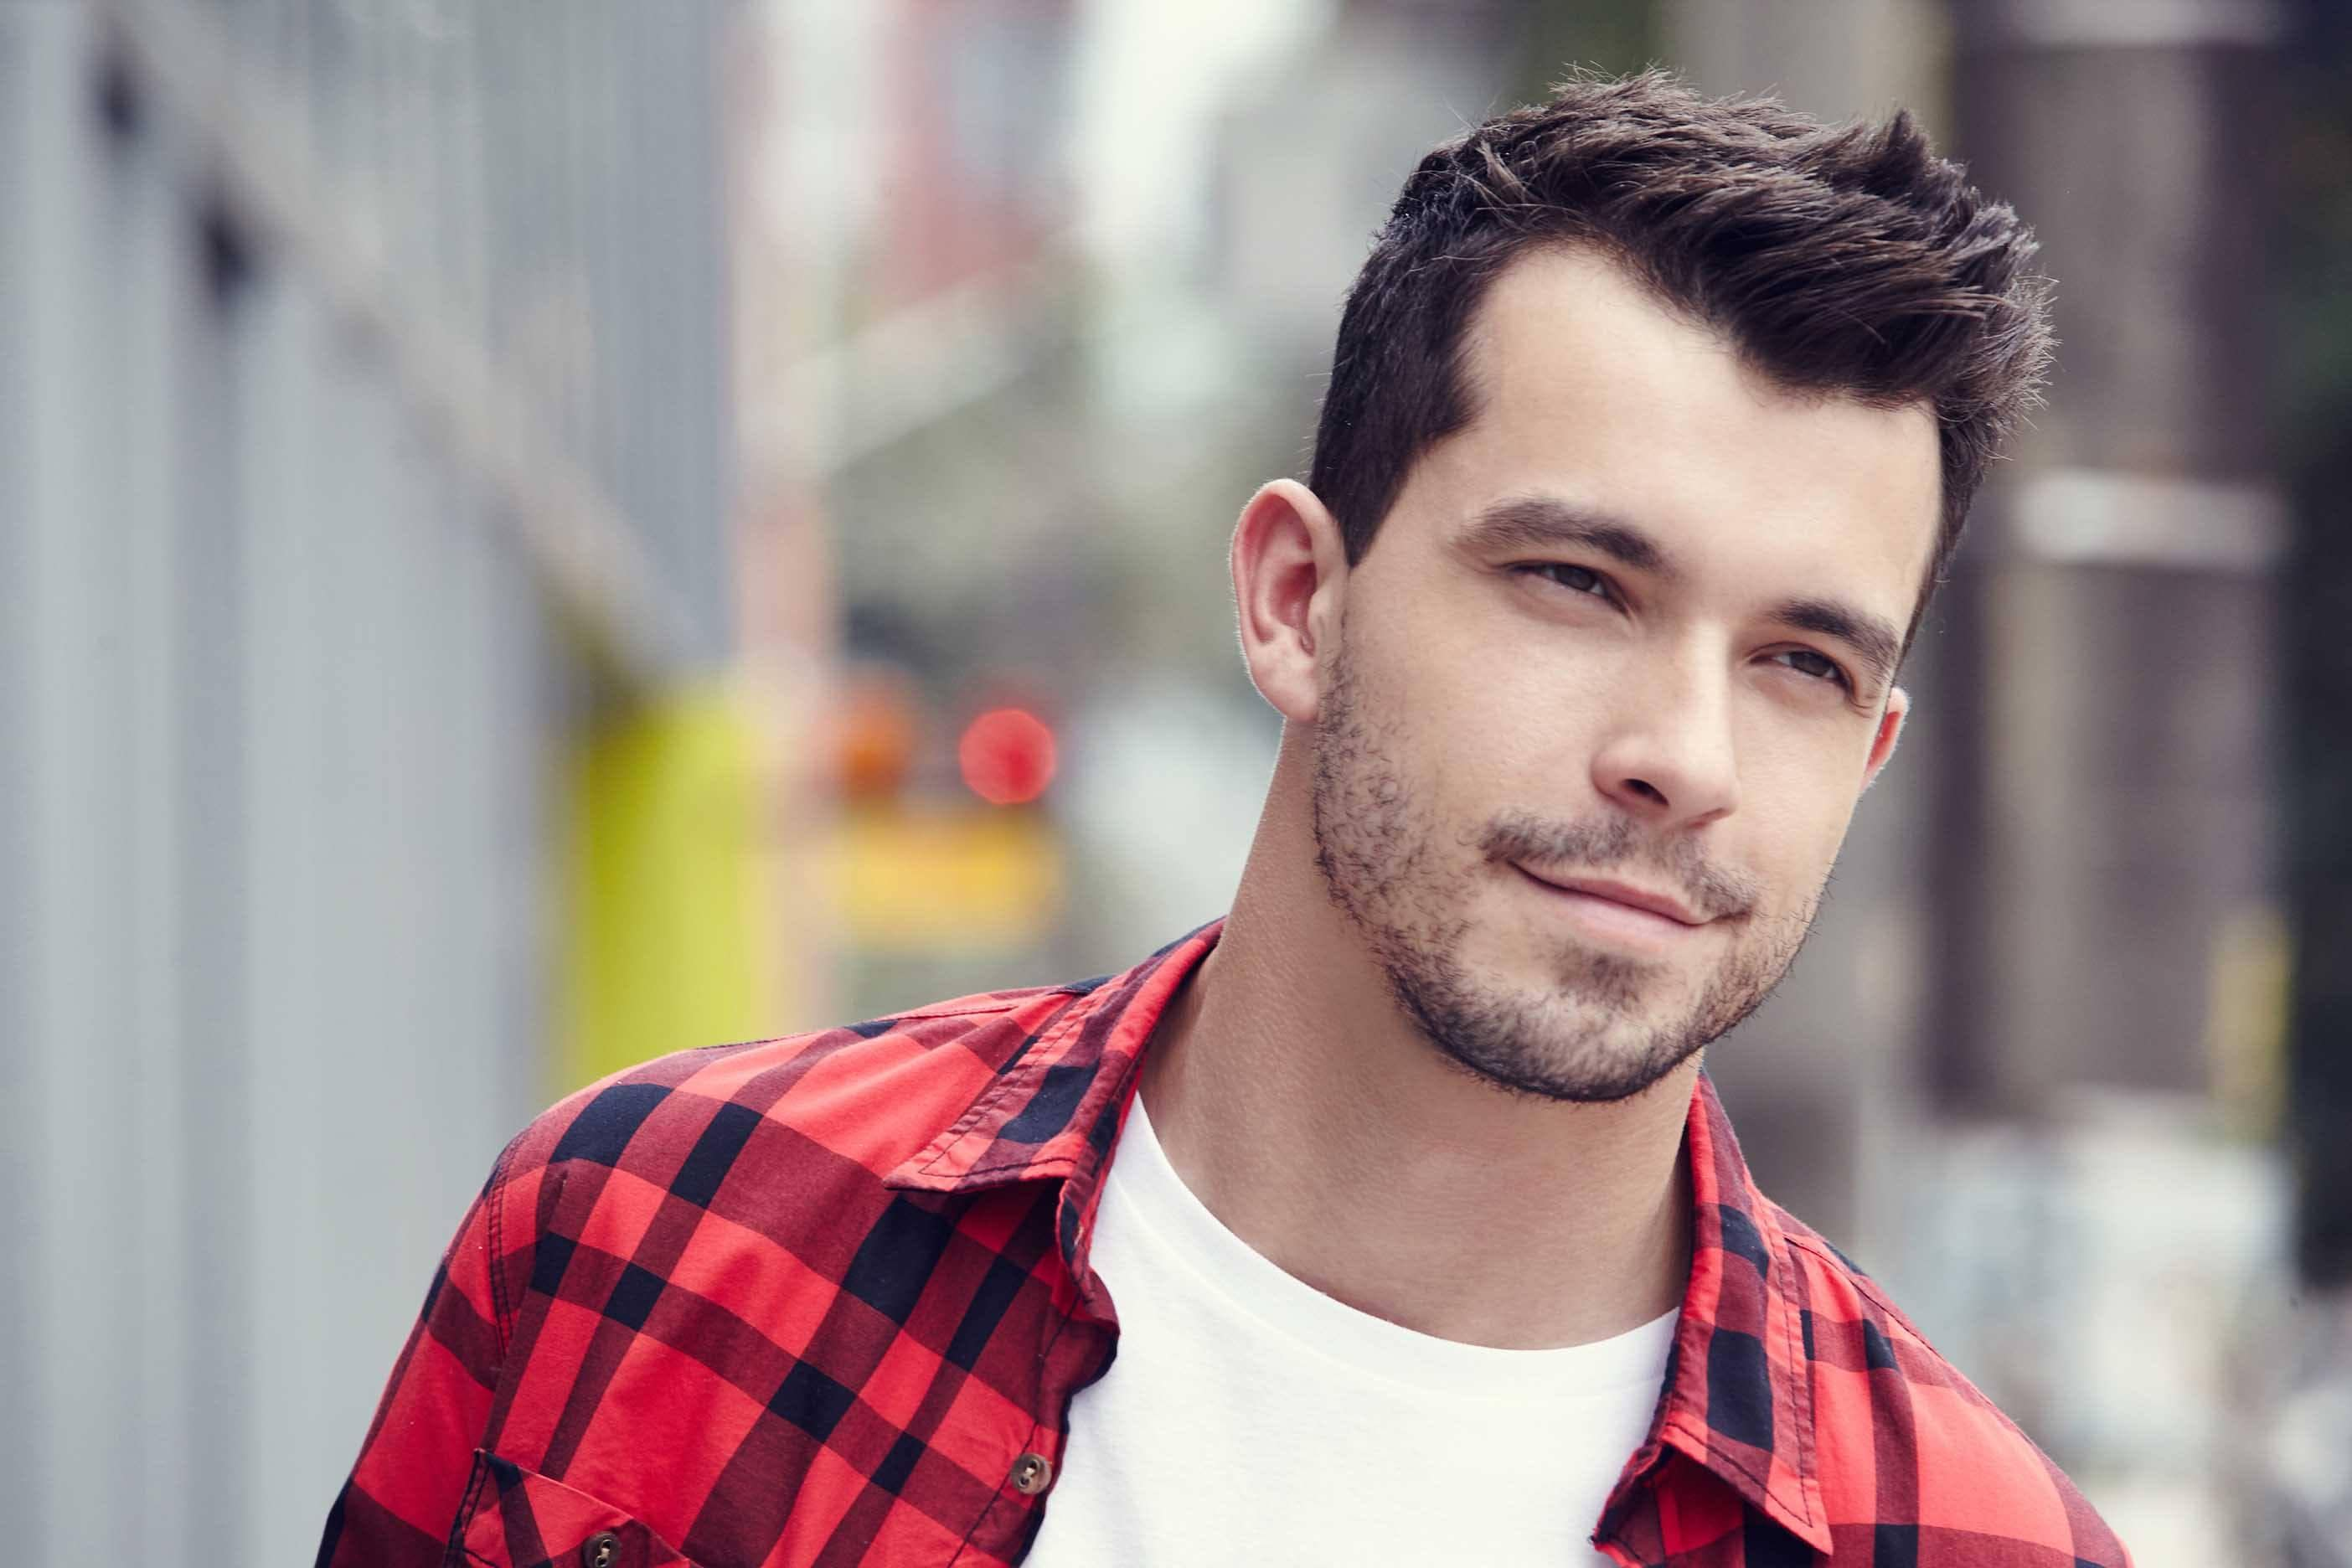 Mens Hair Style How To Get The Bedhead Look